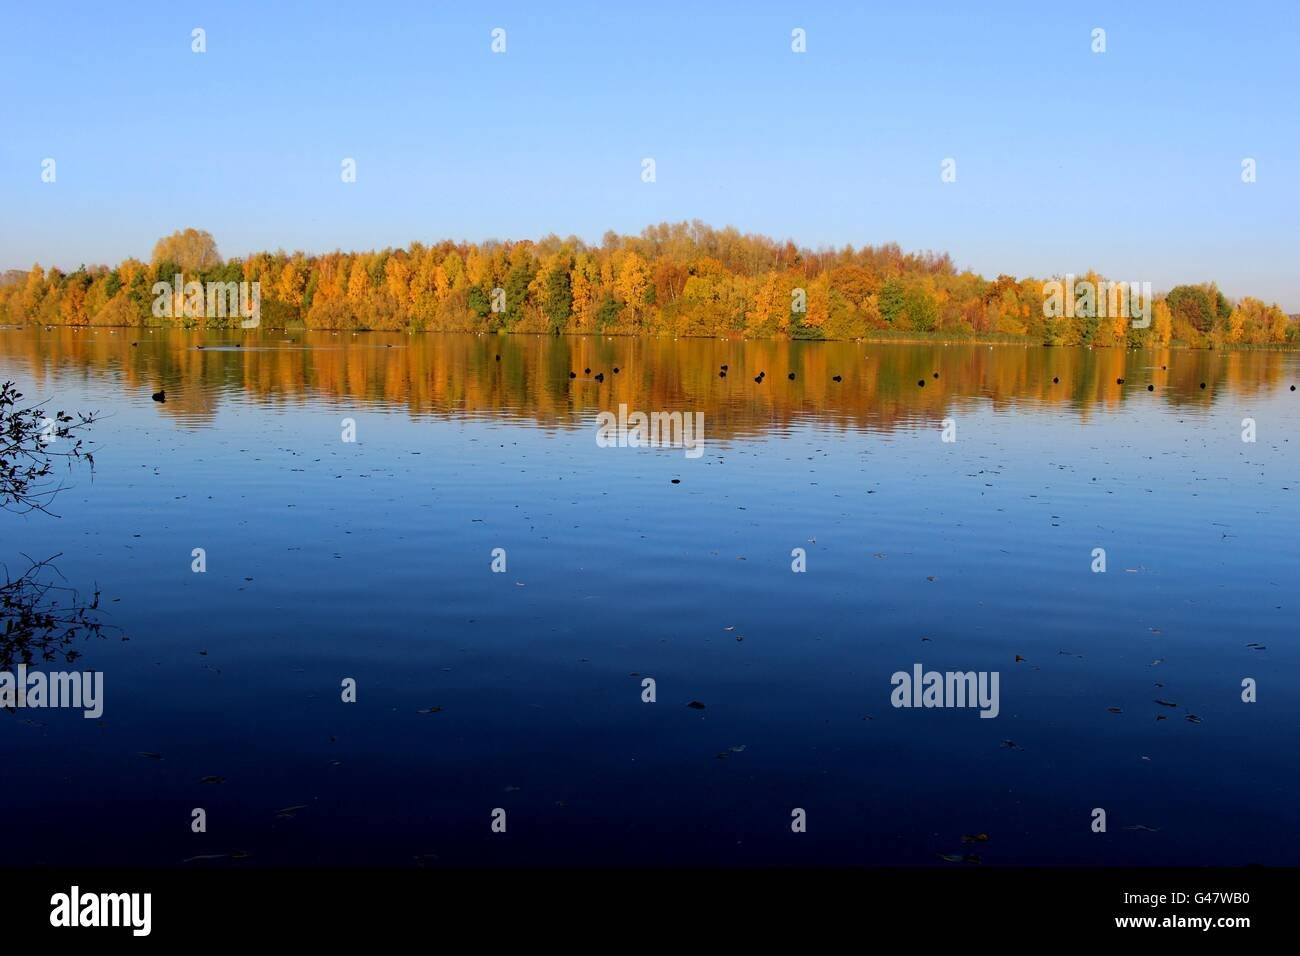 Reflections in a lake at Sandwell Valley Park. - Stock Image